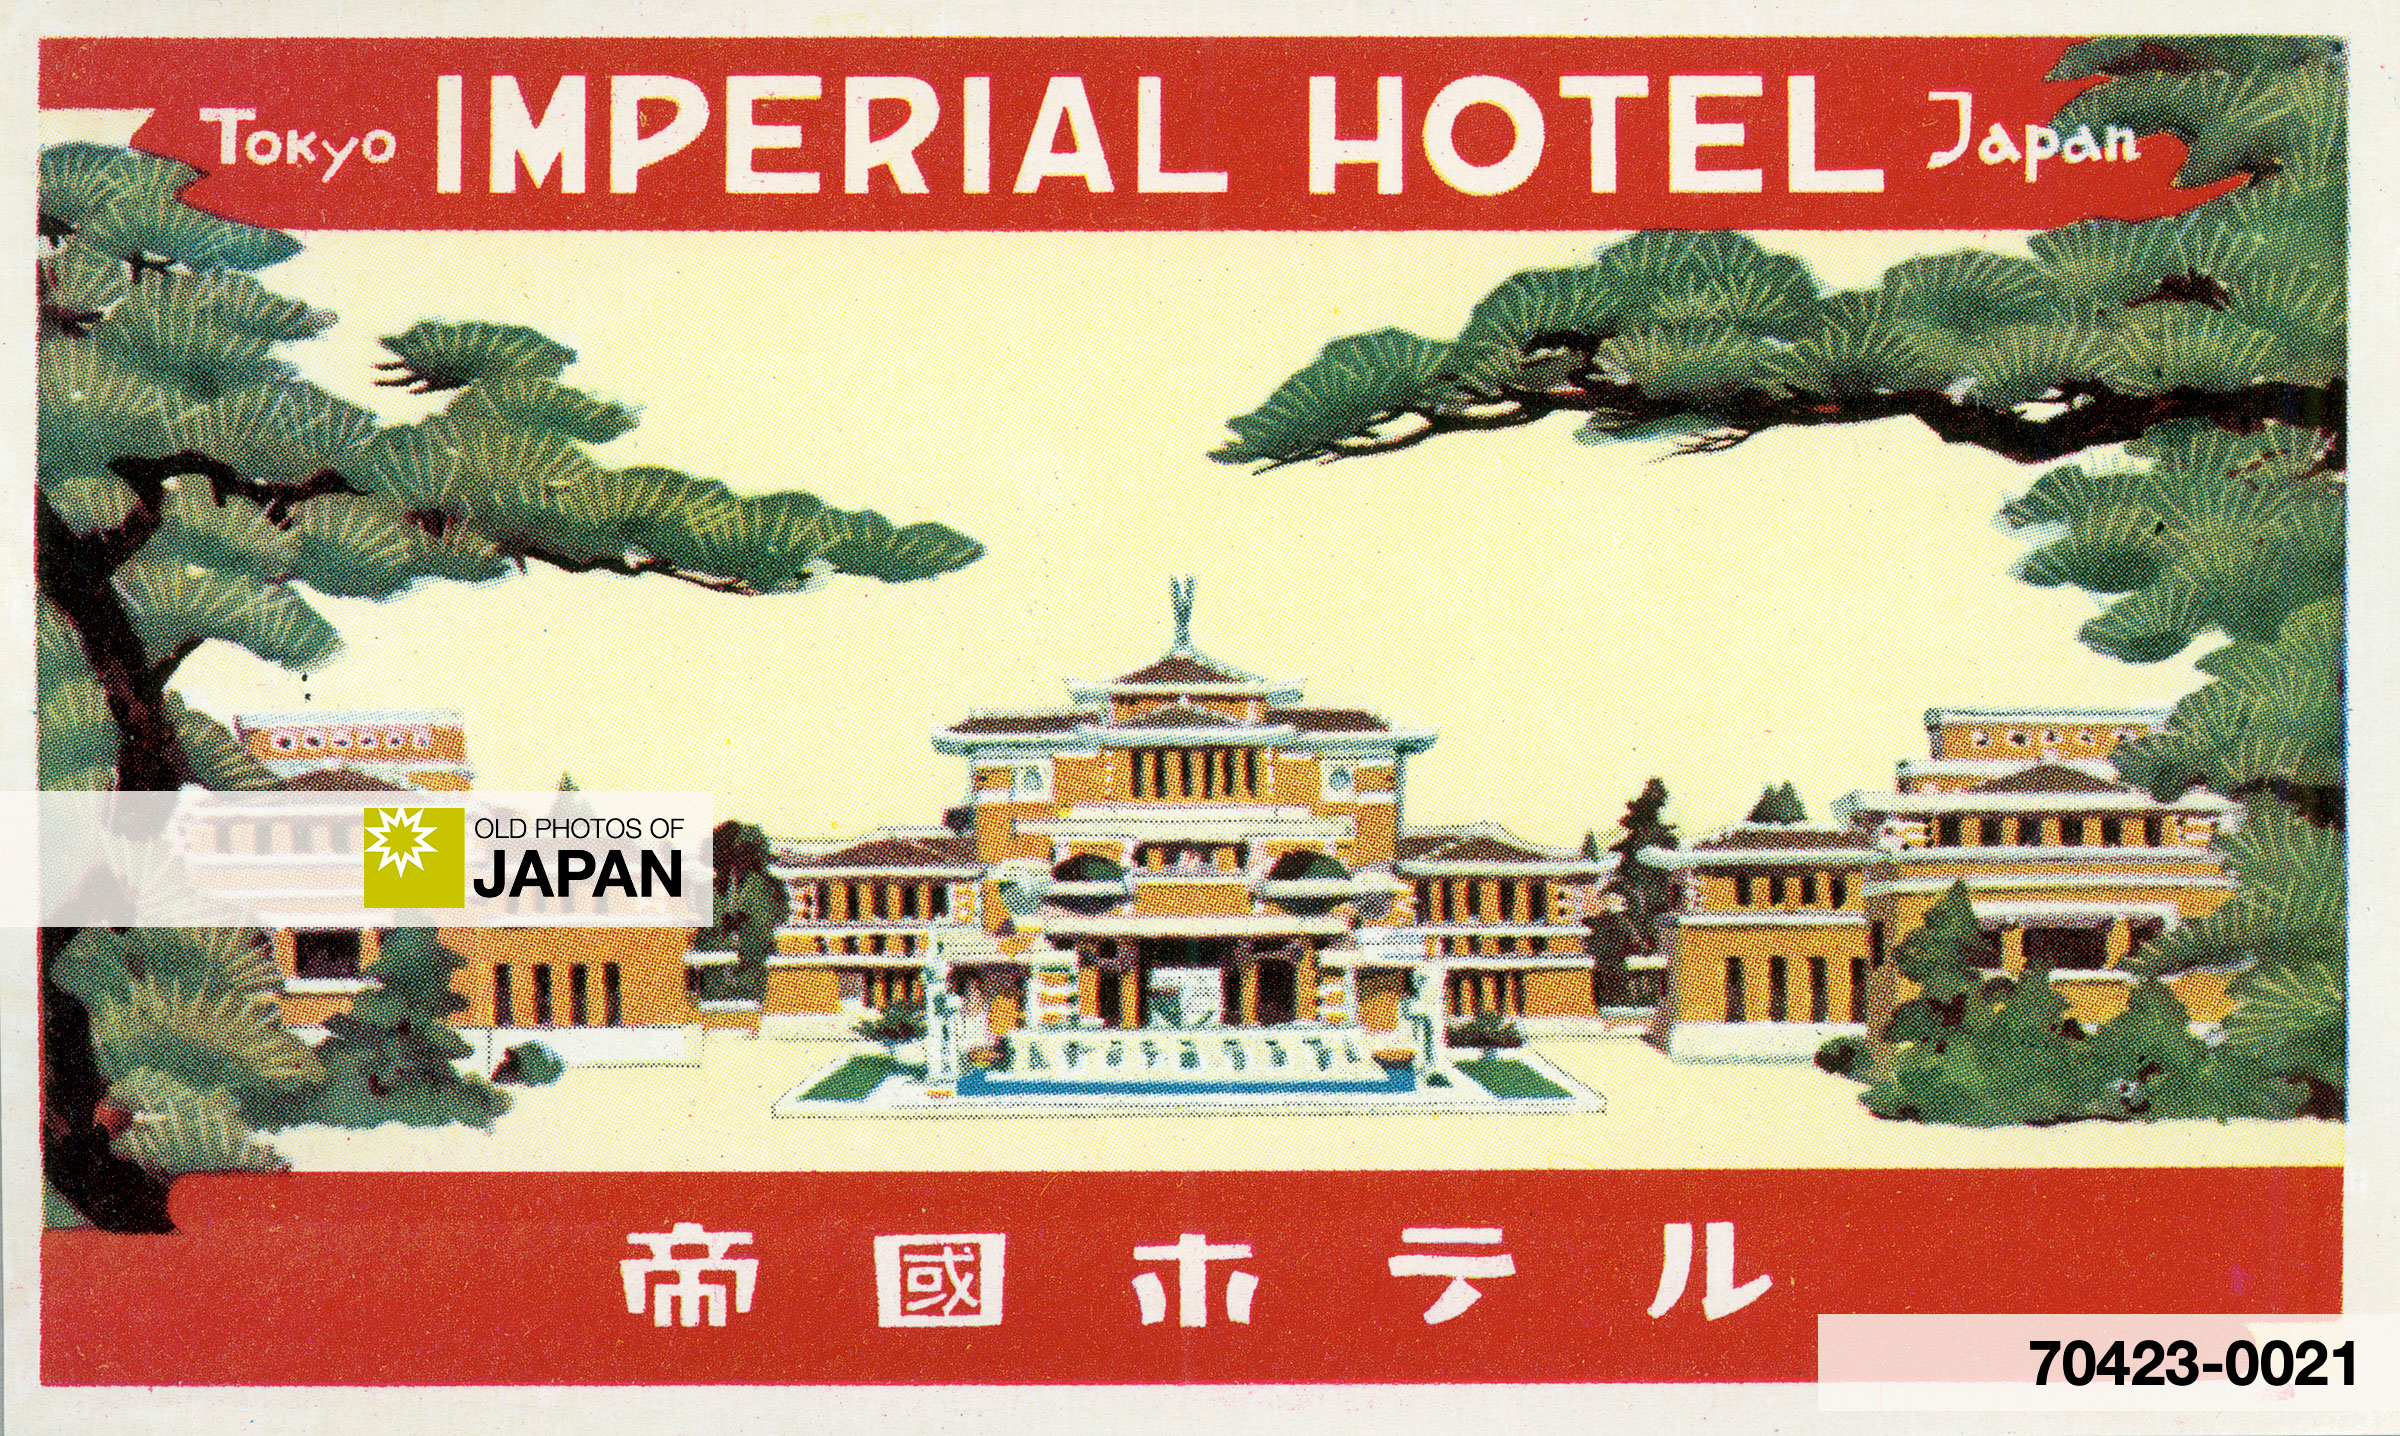 Luggage label for the Imperial Hotel in Tokyo